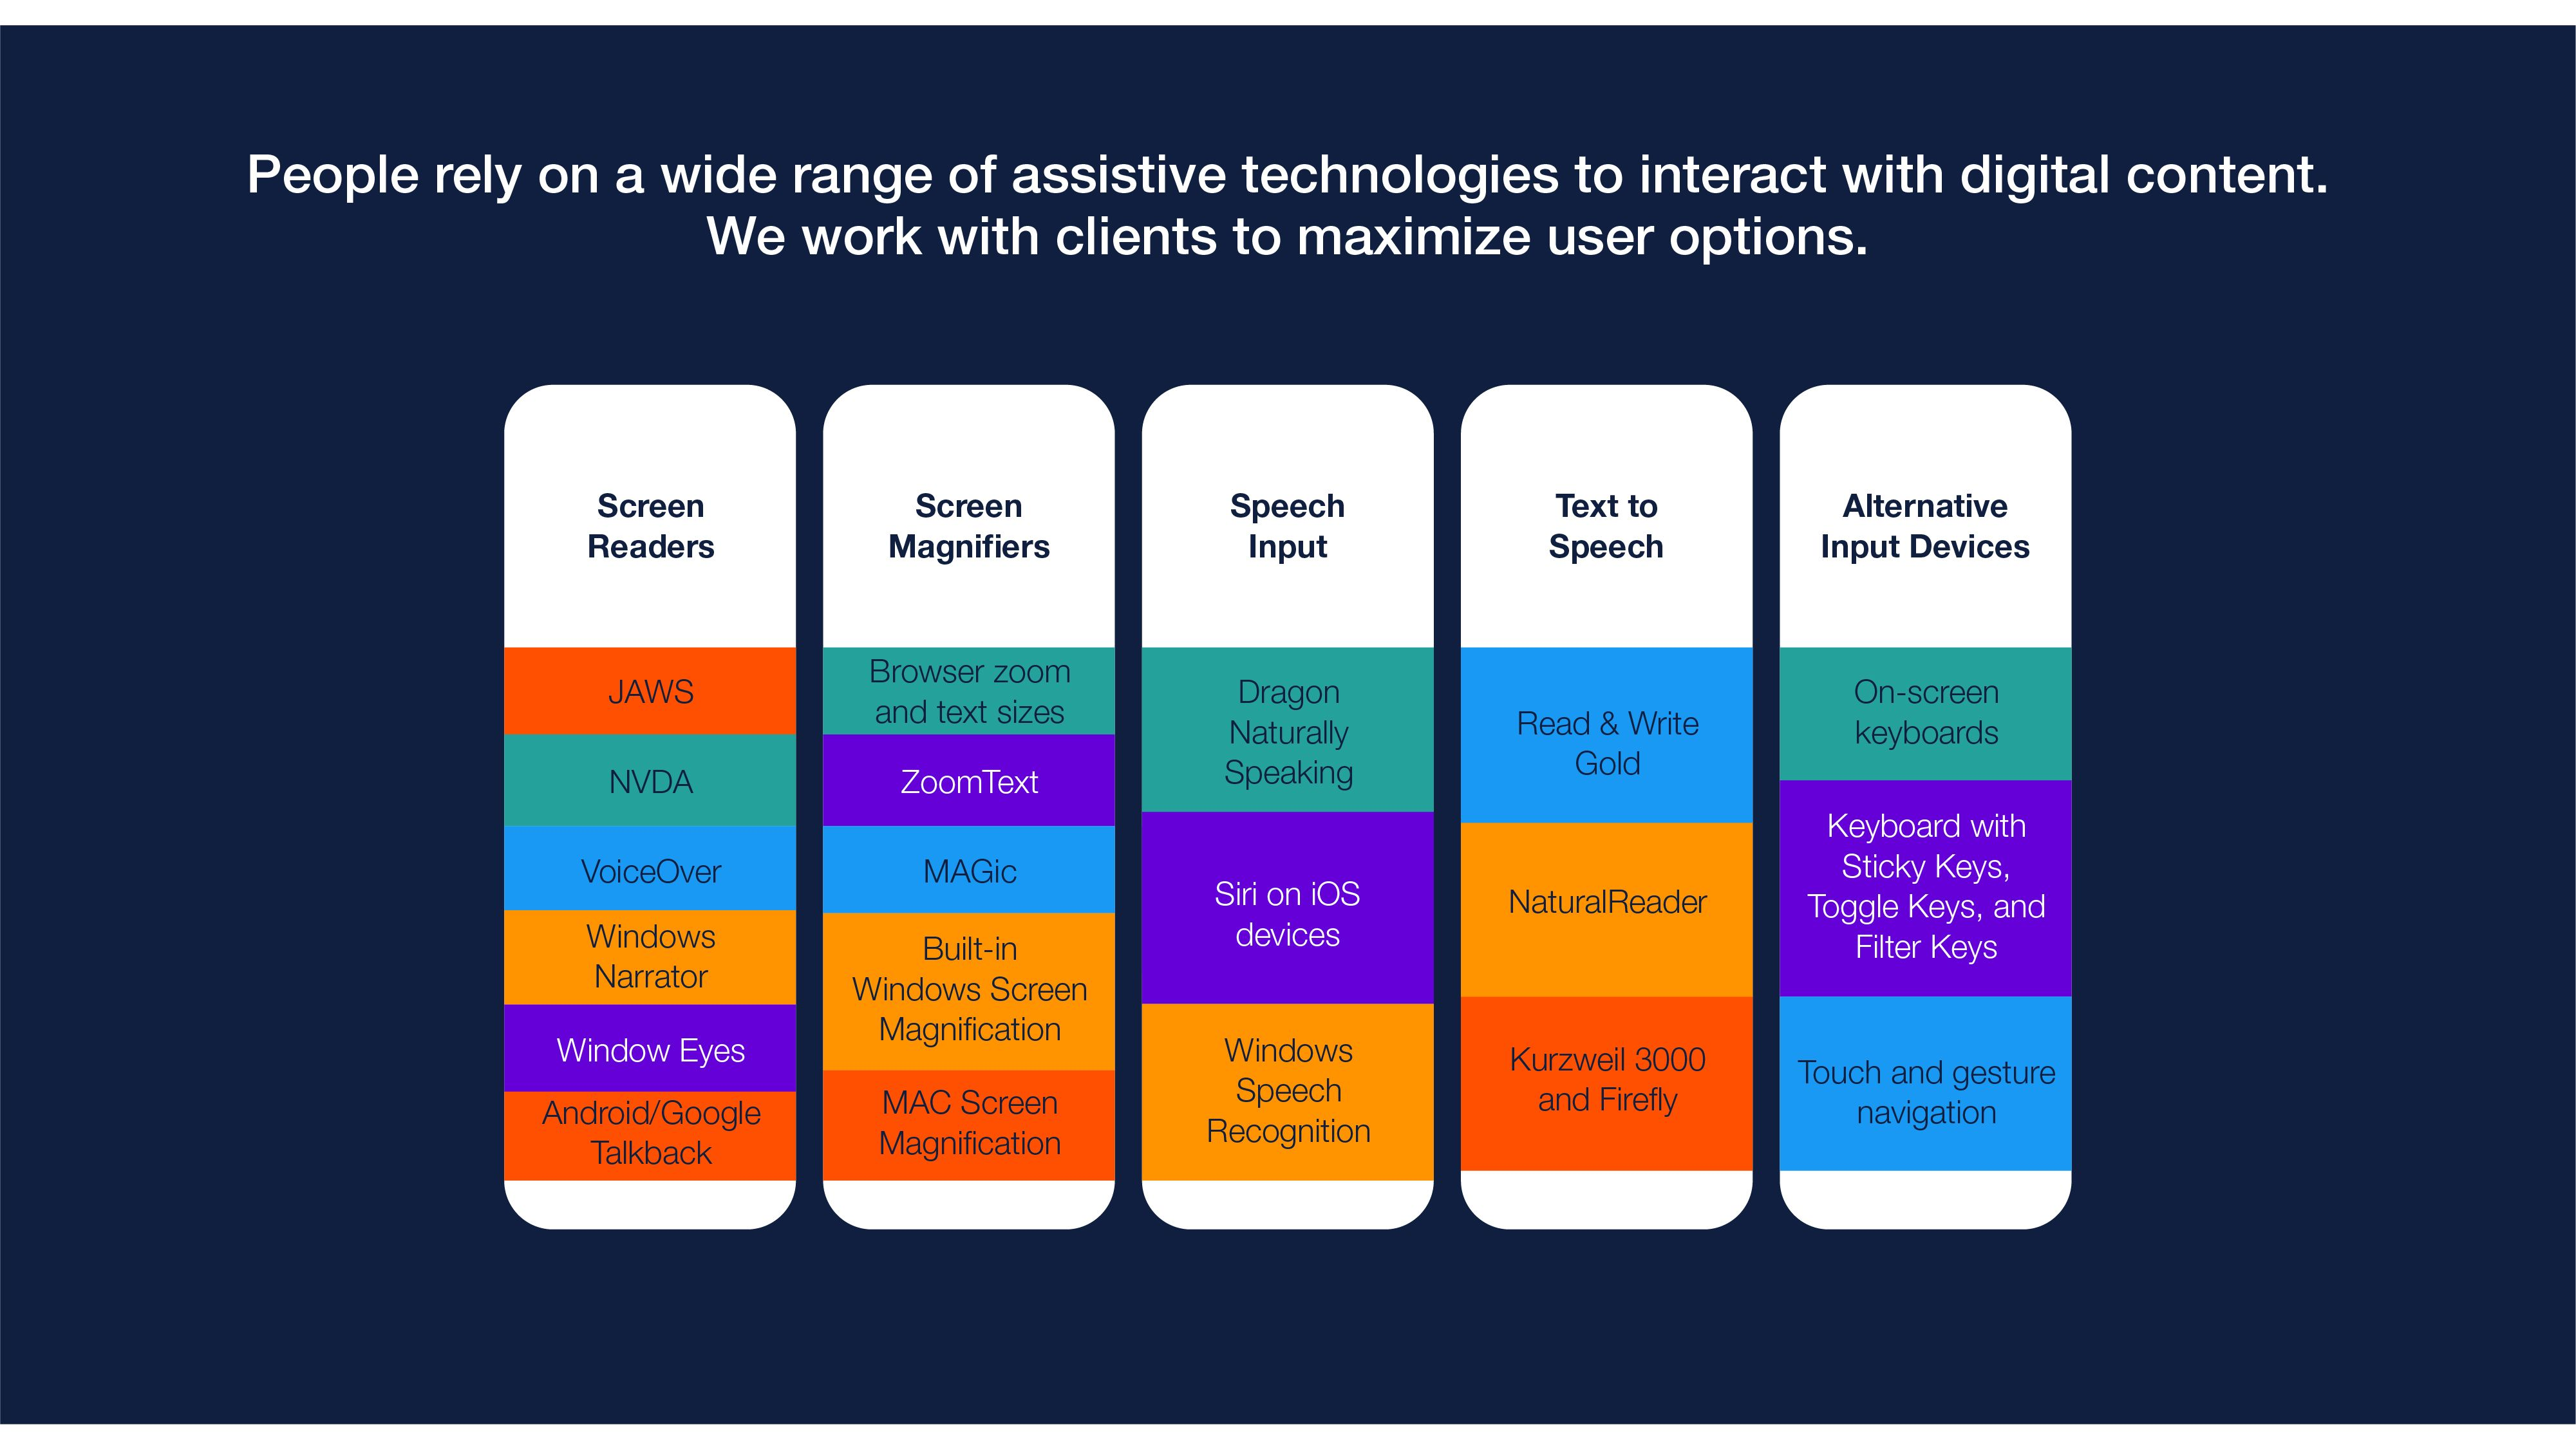 A chart lists common assistive technologies in five categories: screen readers, screen magnifiers, speech input, text to speech, and alternative input devices.